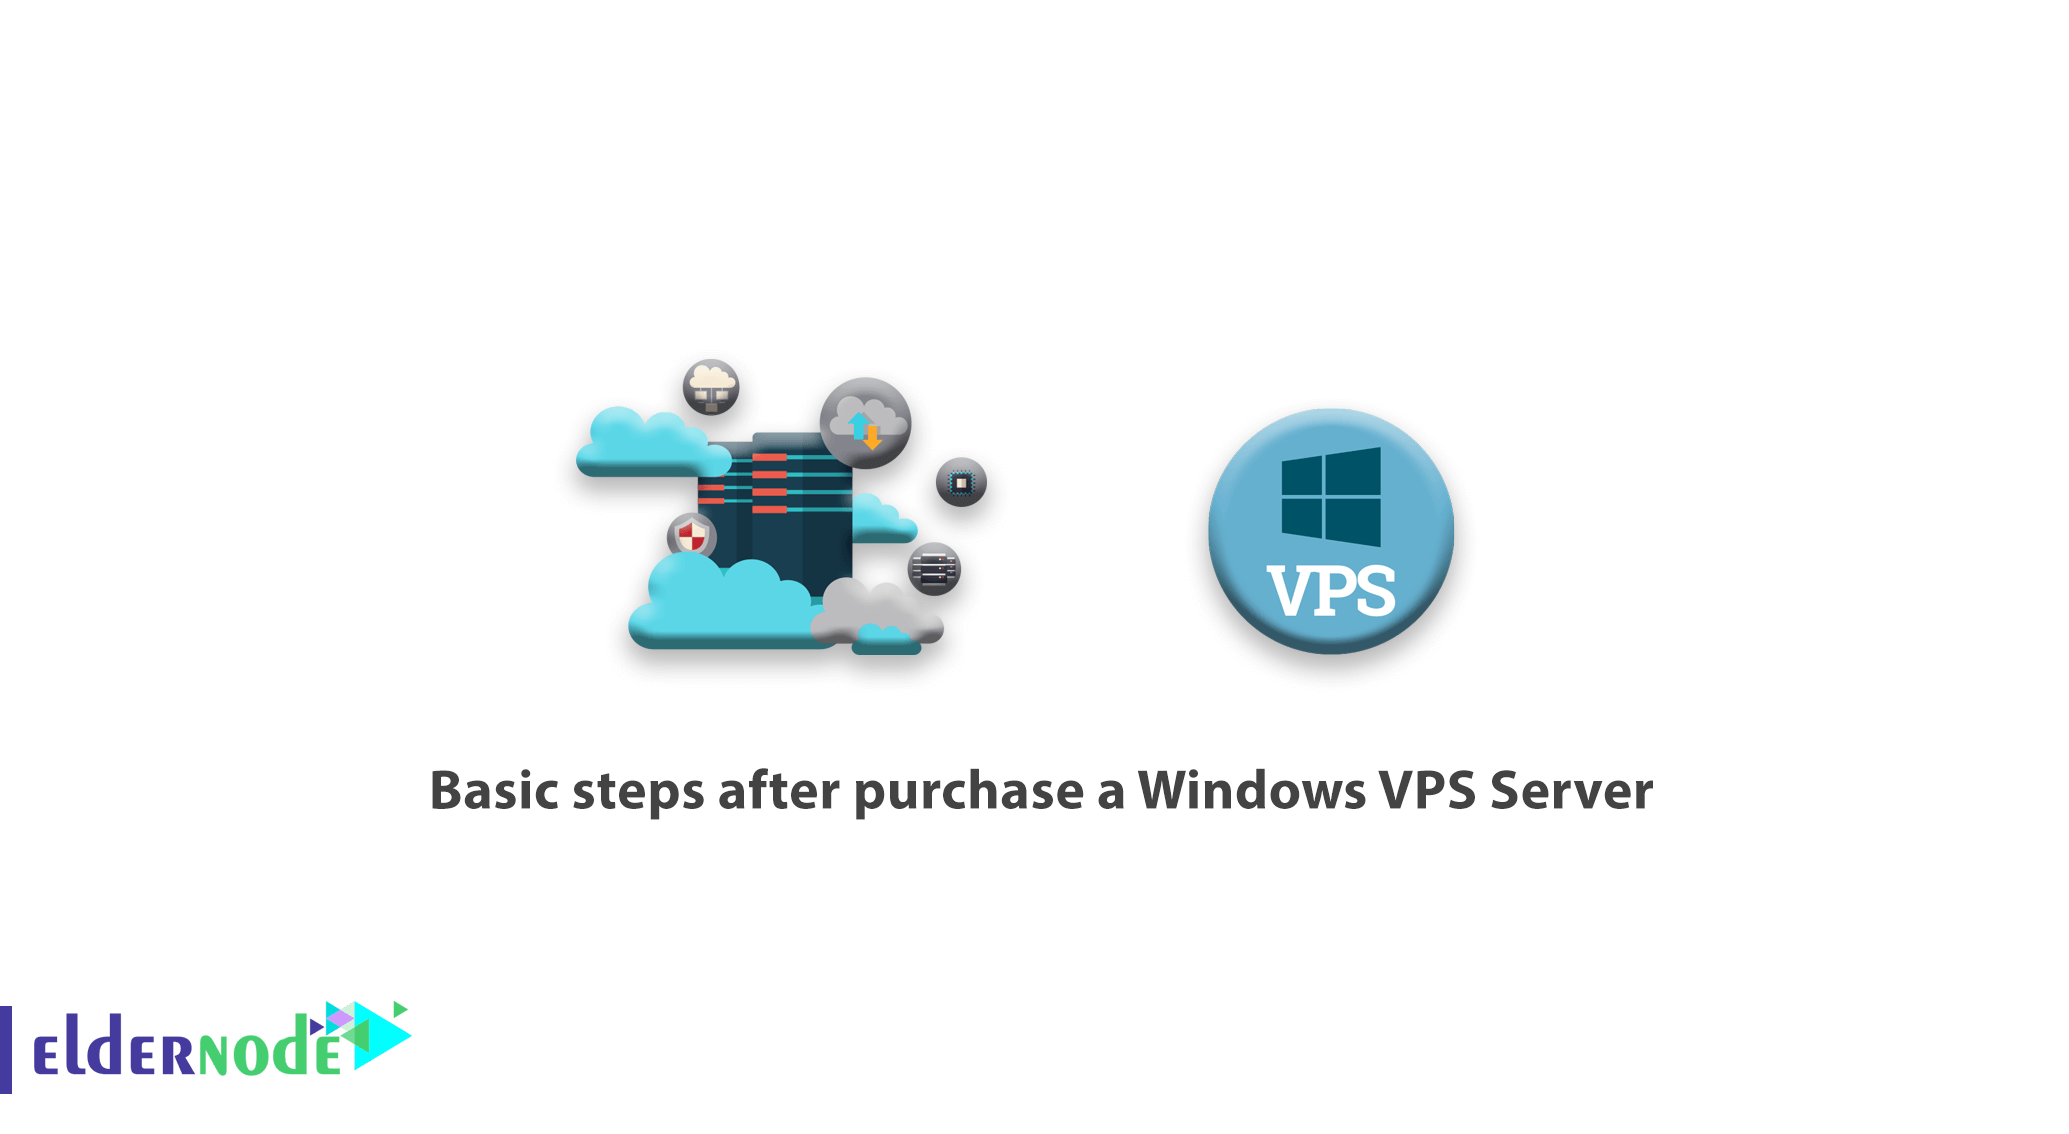 Basic steps after purchase a Windows VPS Server